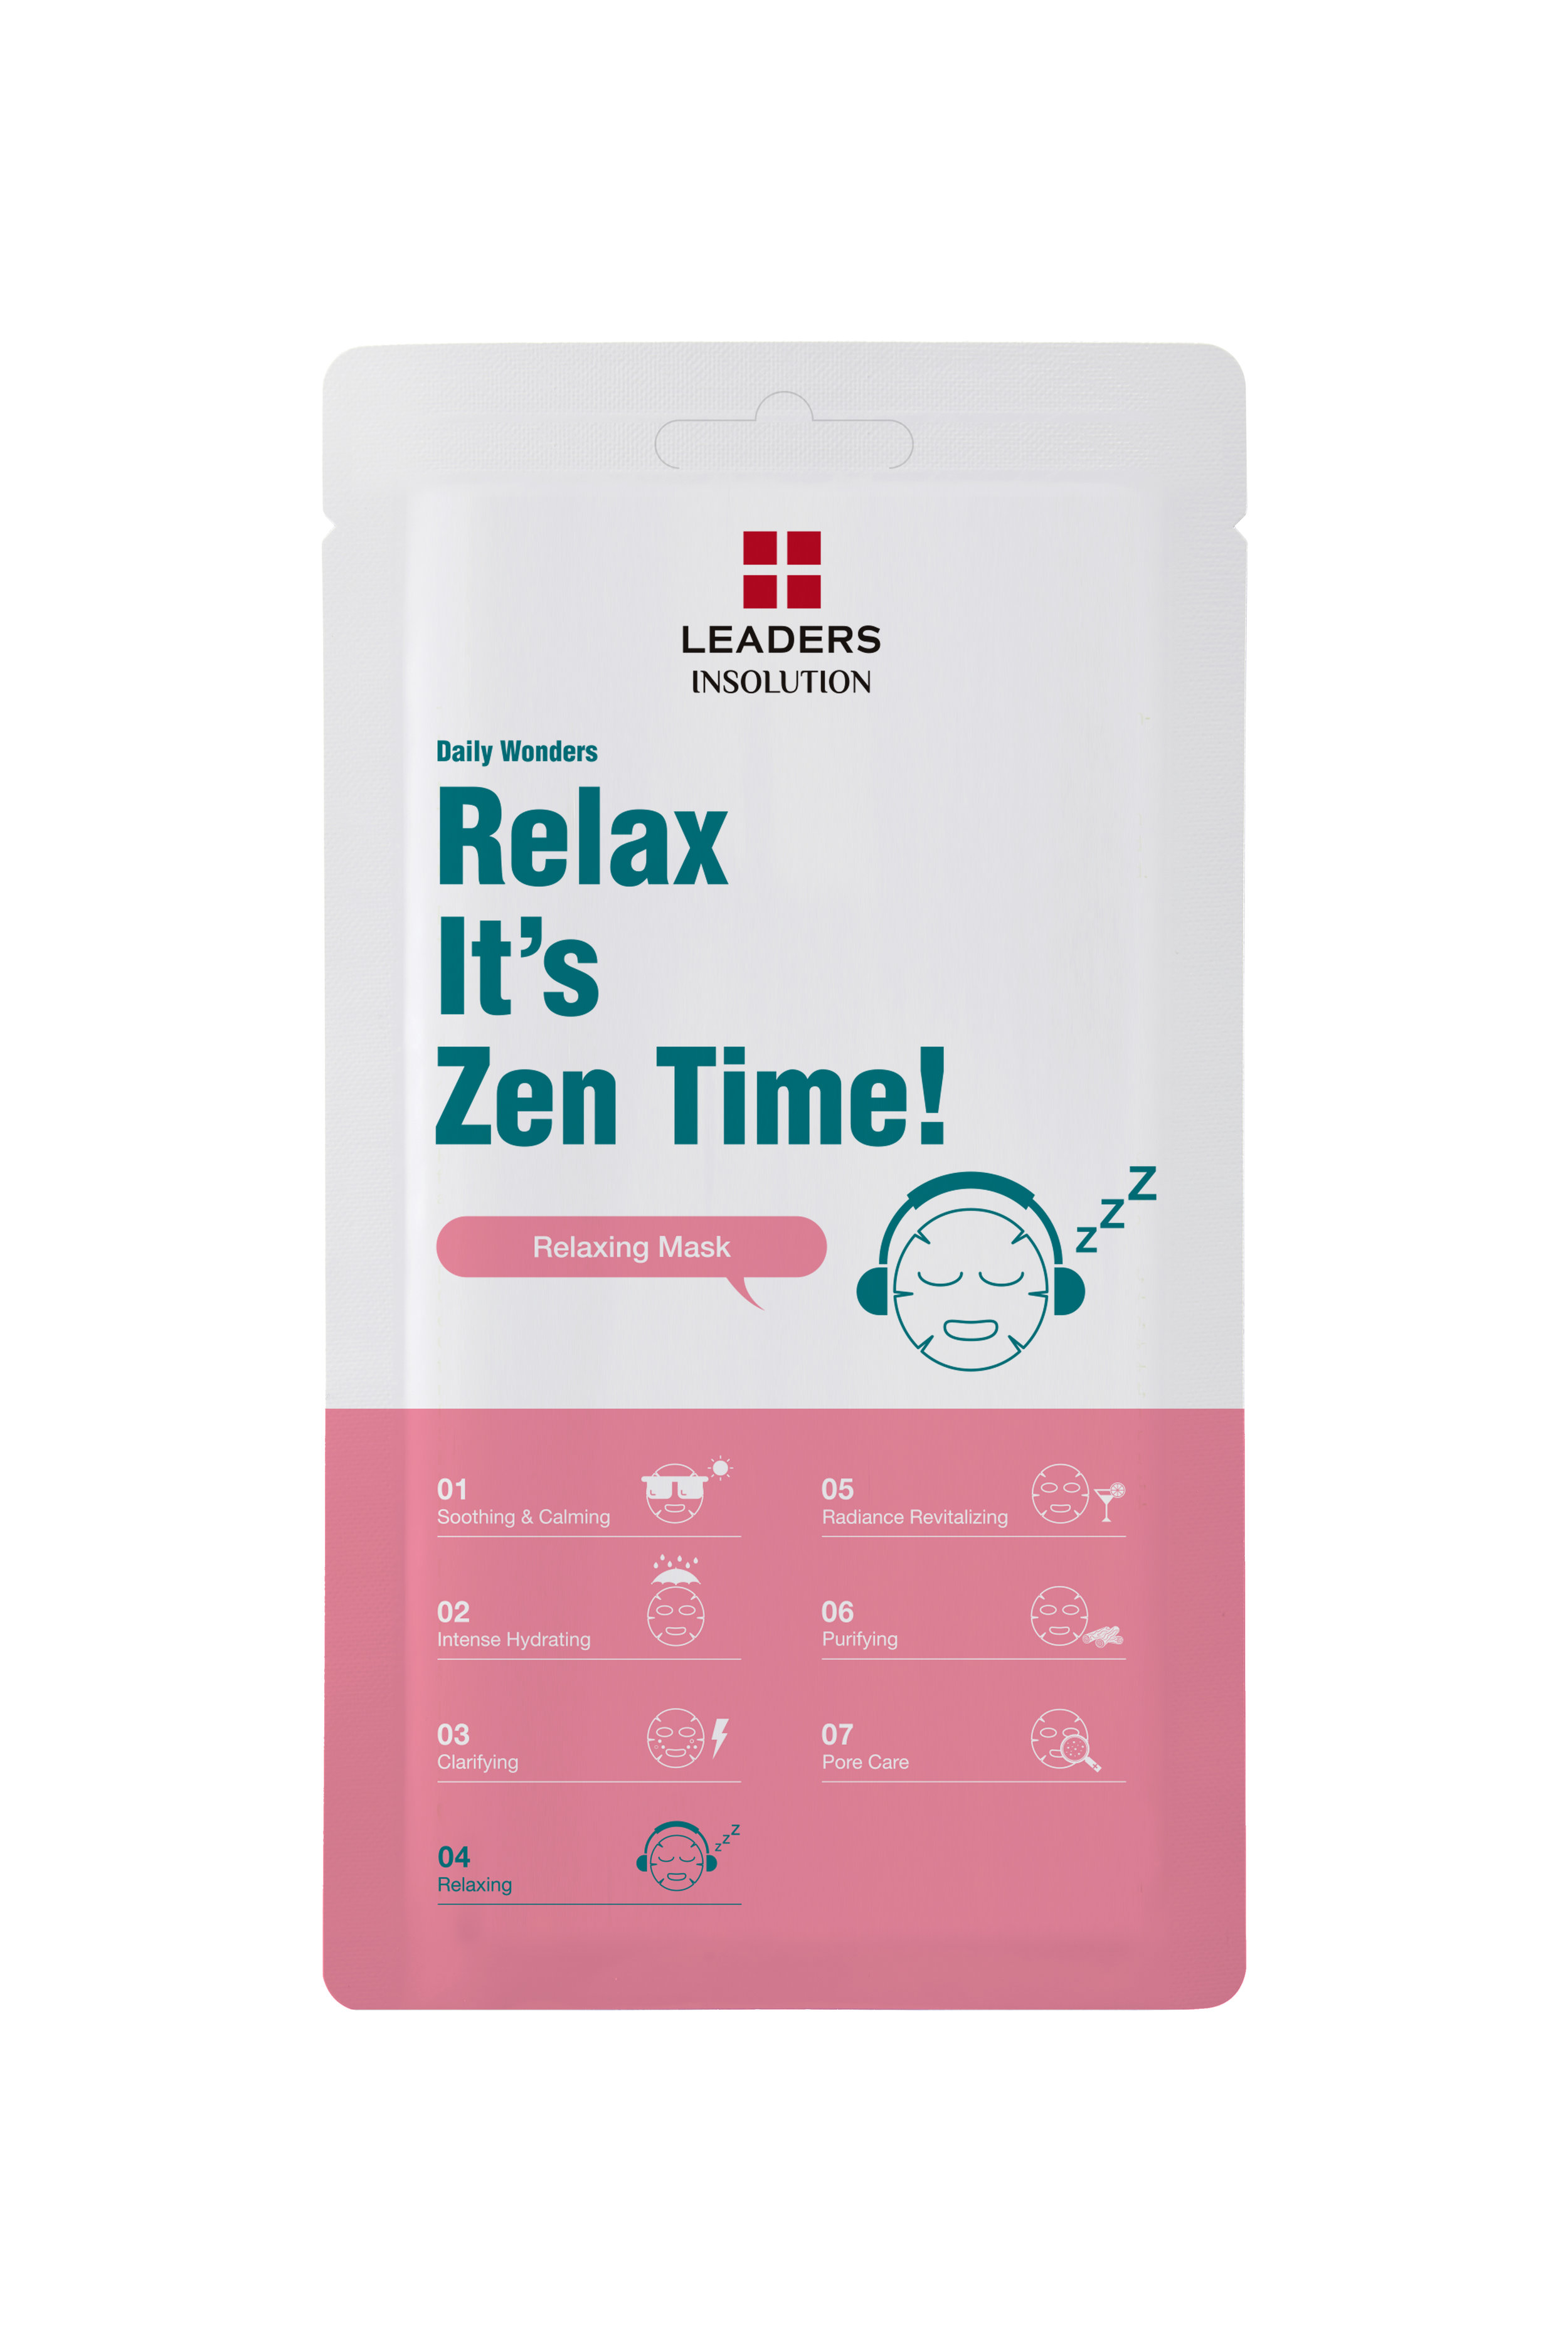 Insolution_Dailywonders_Relax it's zen time_UNI_파우치_전면.jpg